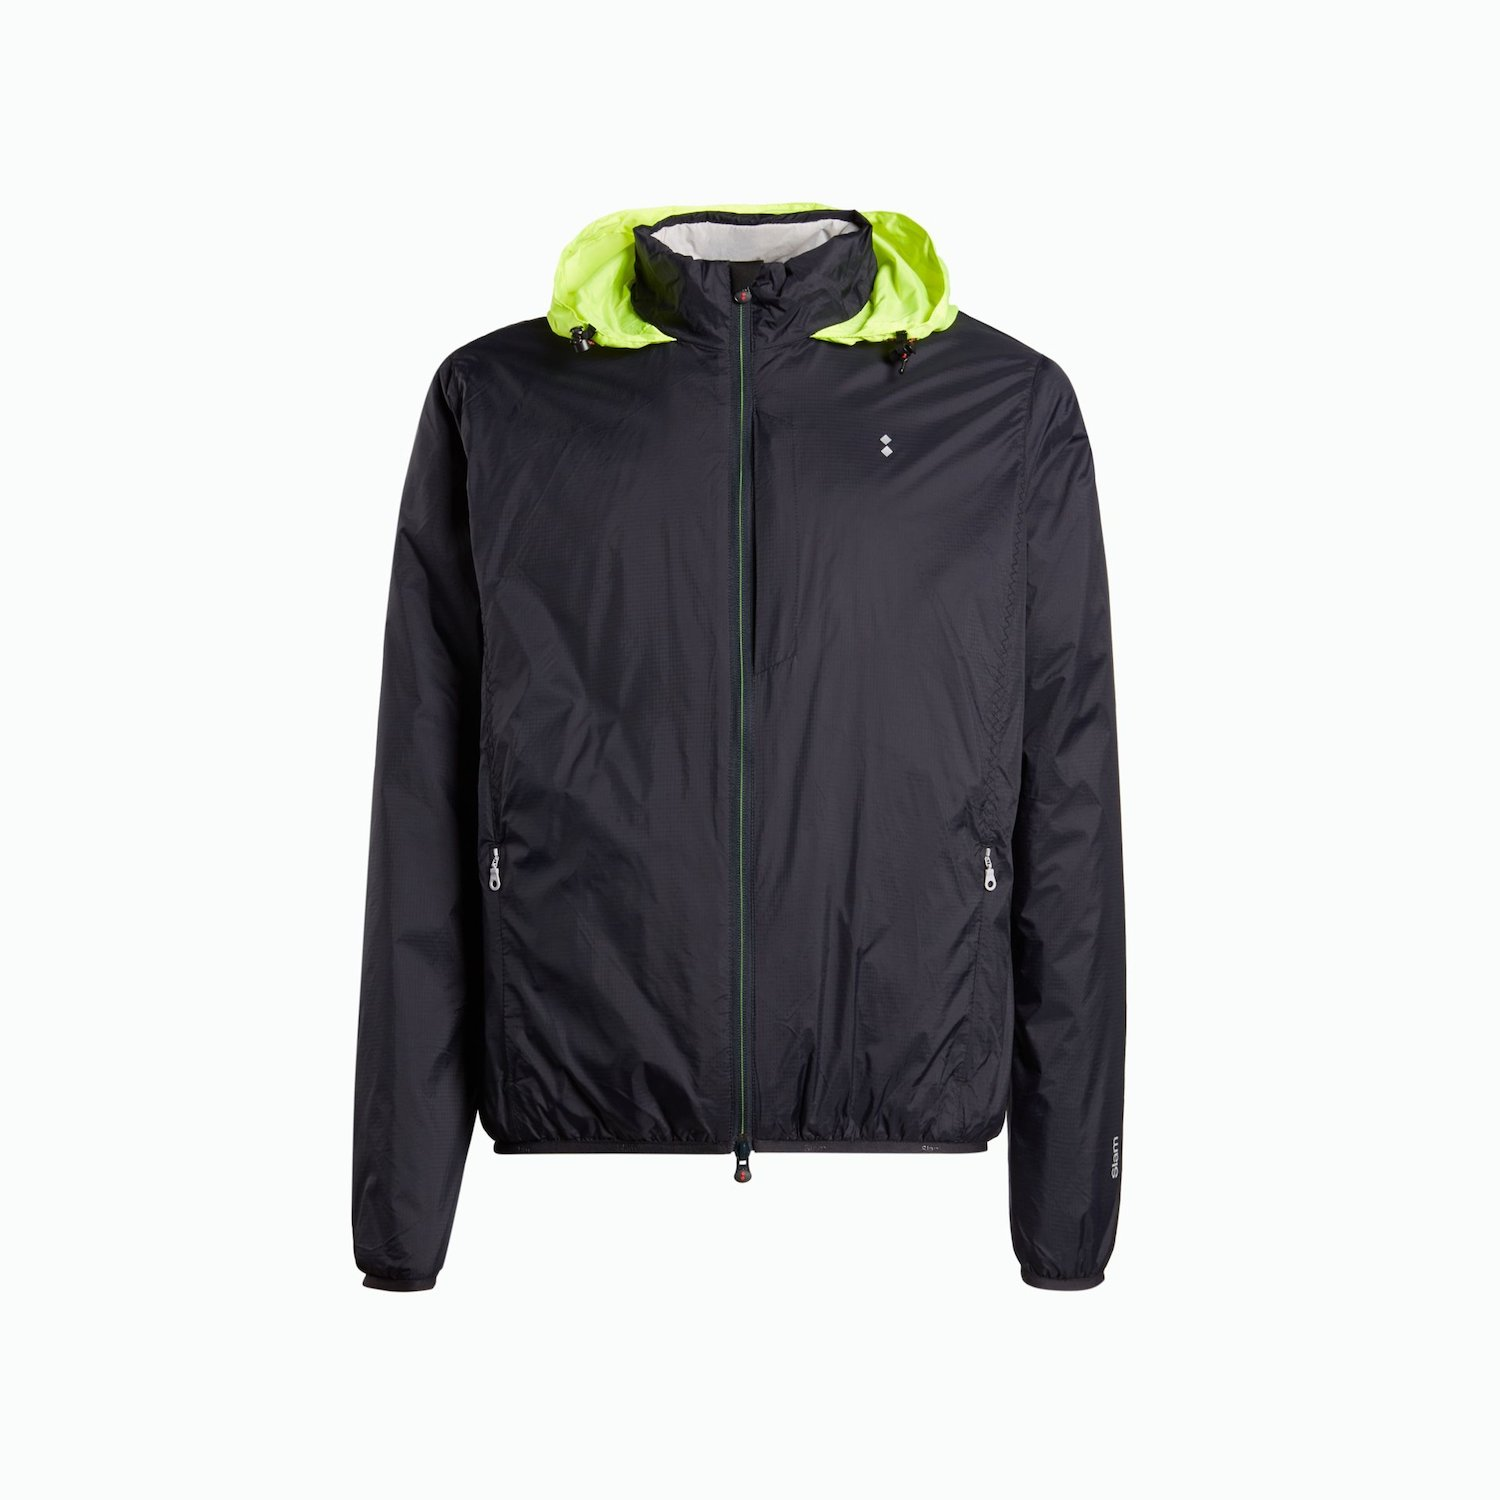 New Blow jacket - Navy